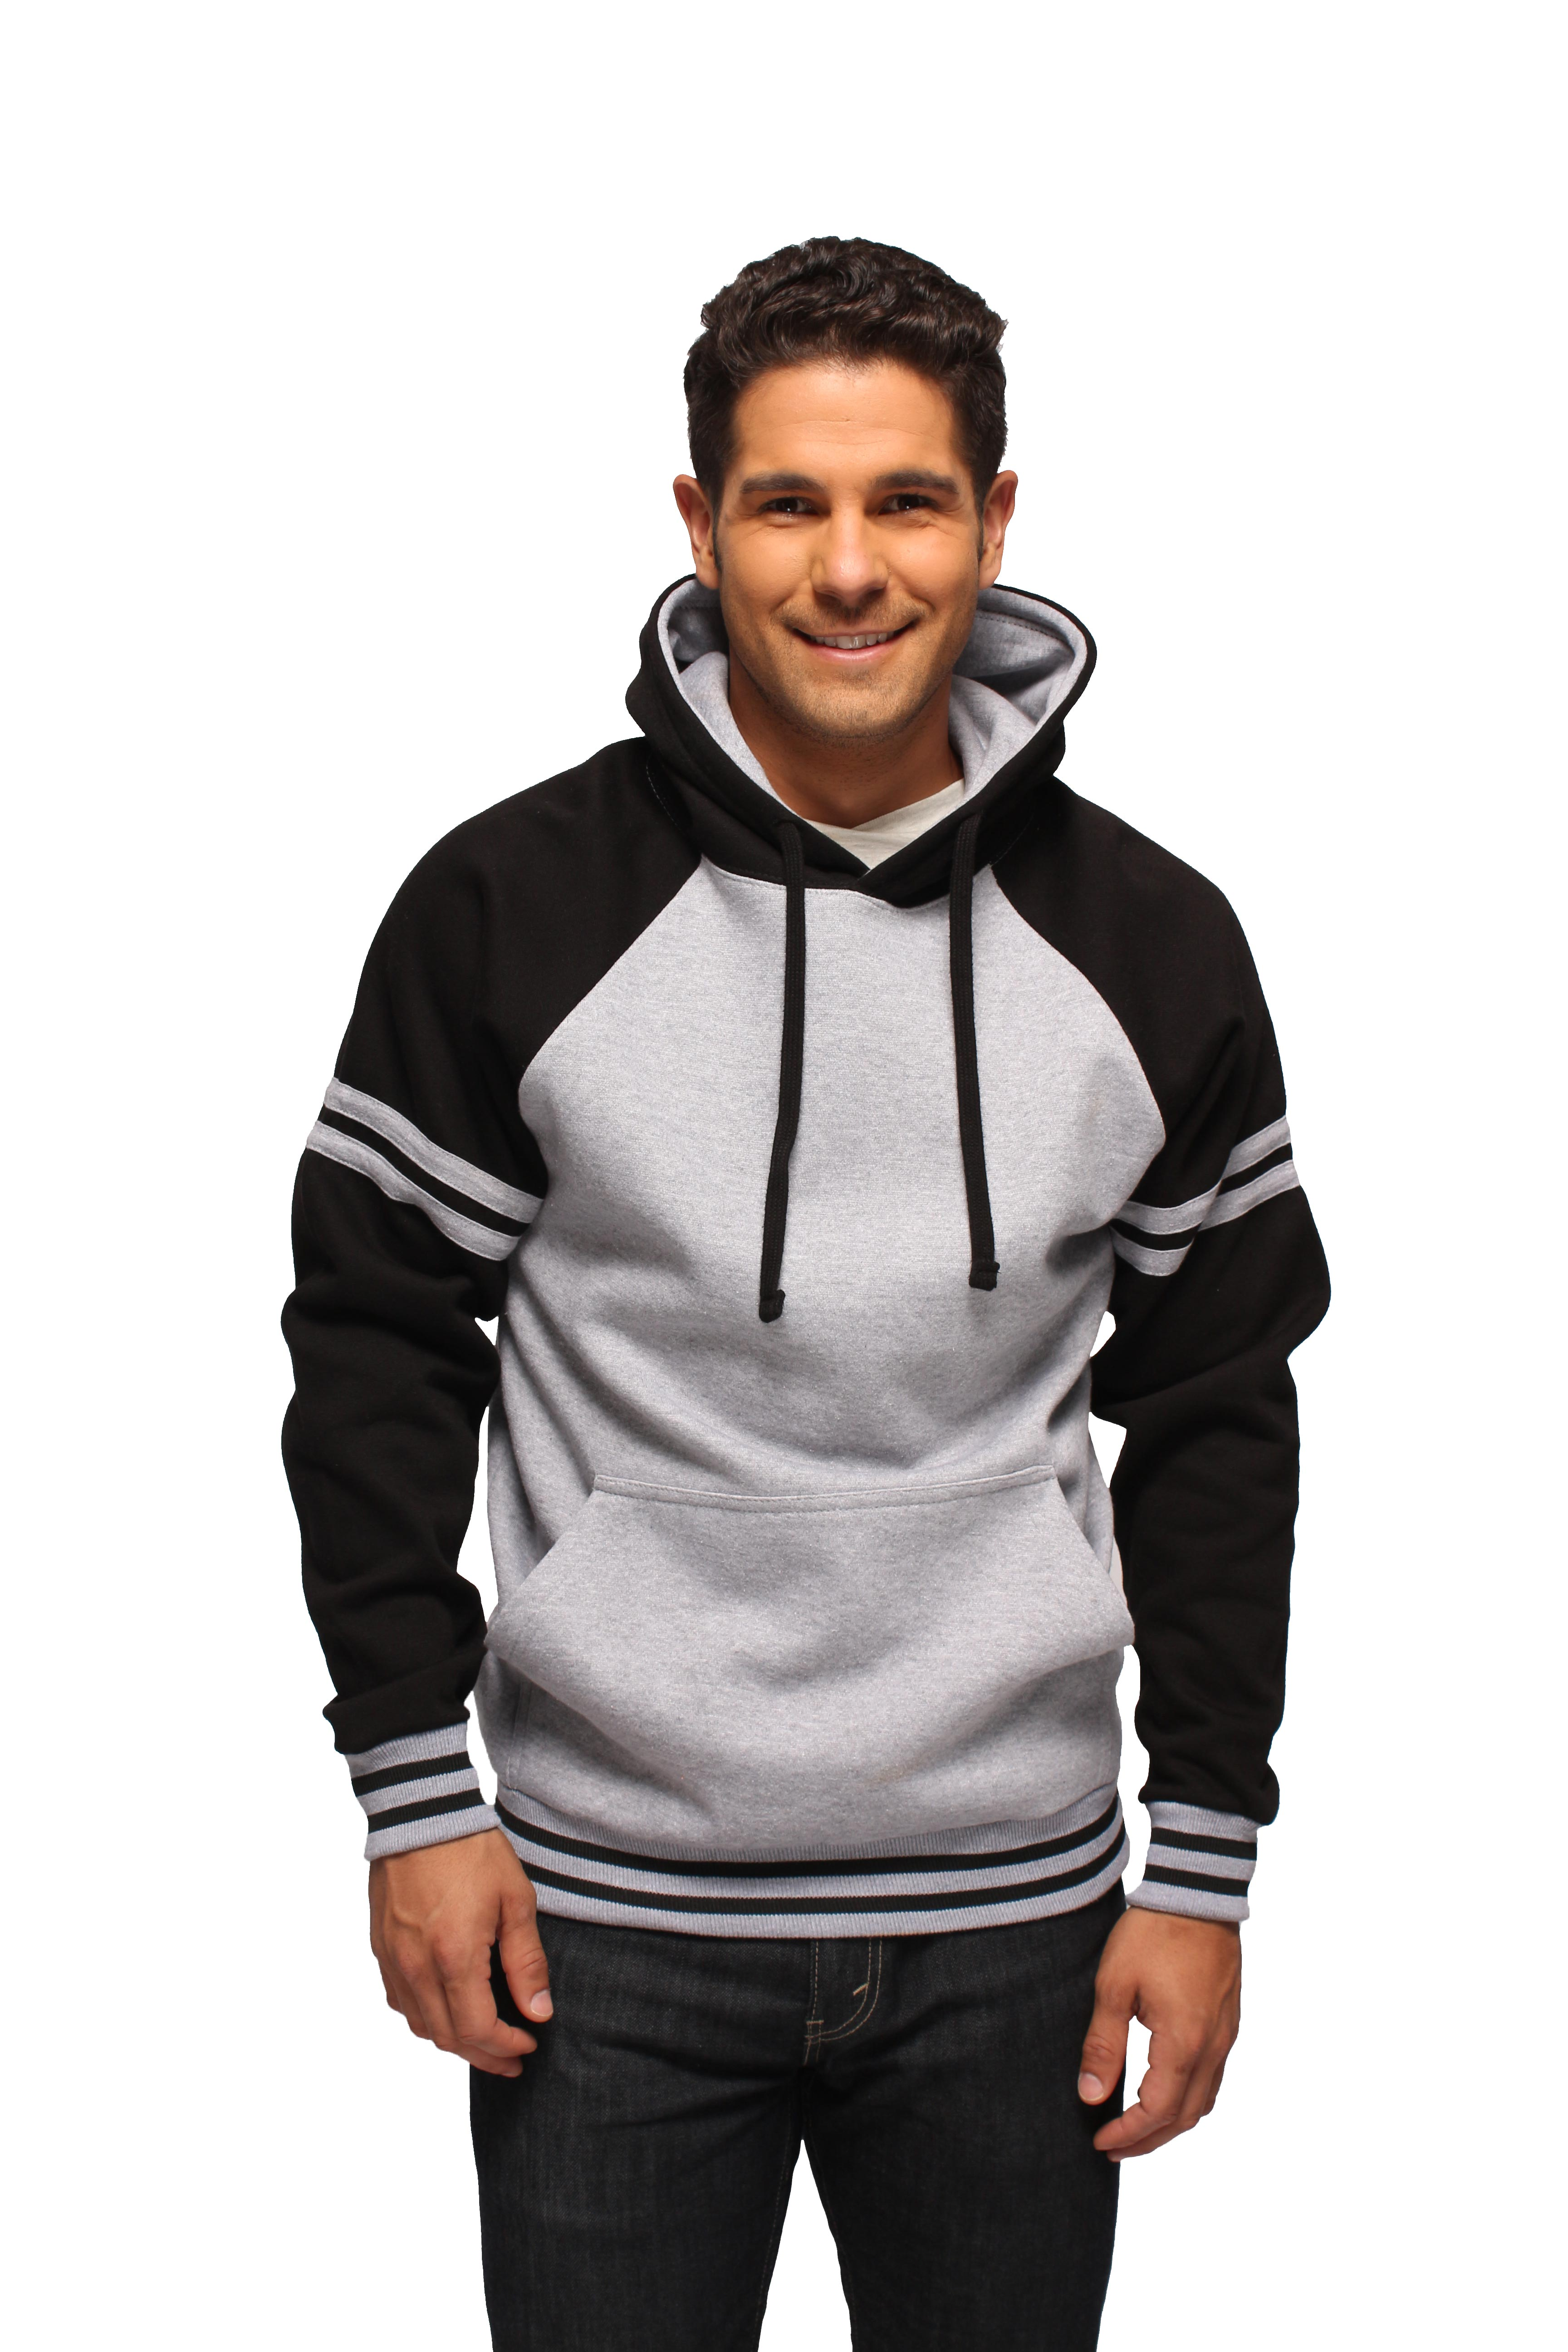 63946e3c5 Contrast Raglan Sleeve With Stripes Pullover Hoodies - MH13115 - A.M.S